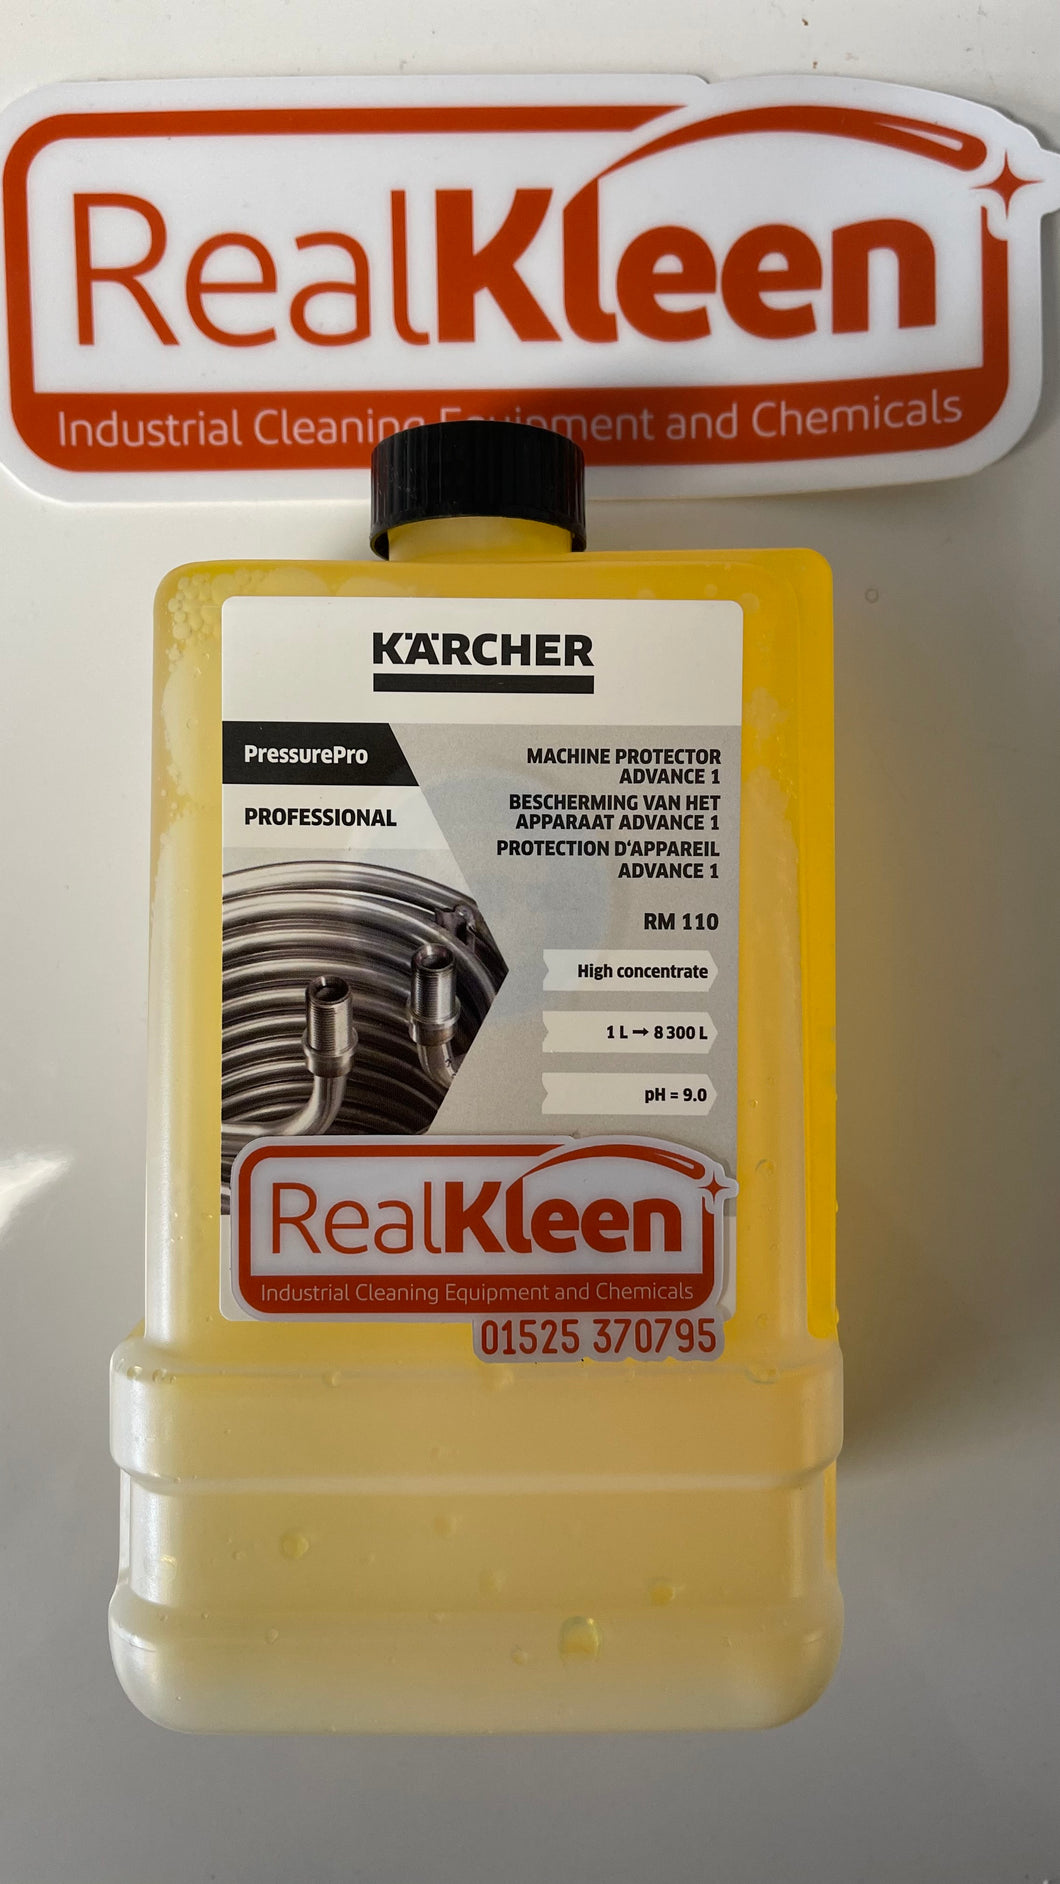 RM110 KARCHER machine Protector Fluid 1 Litre